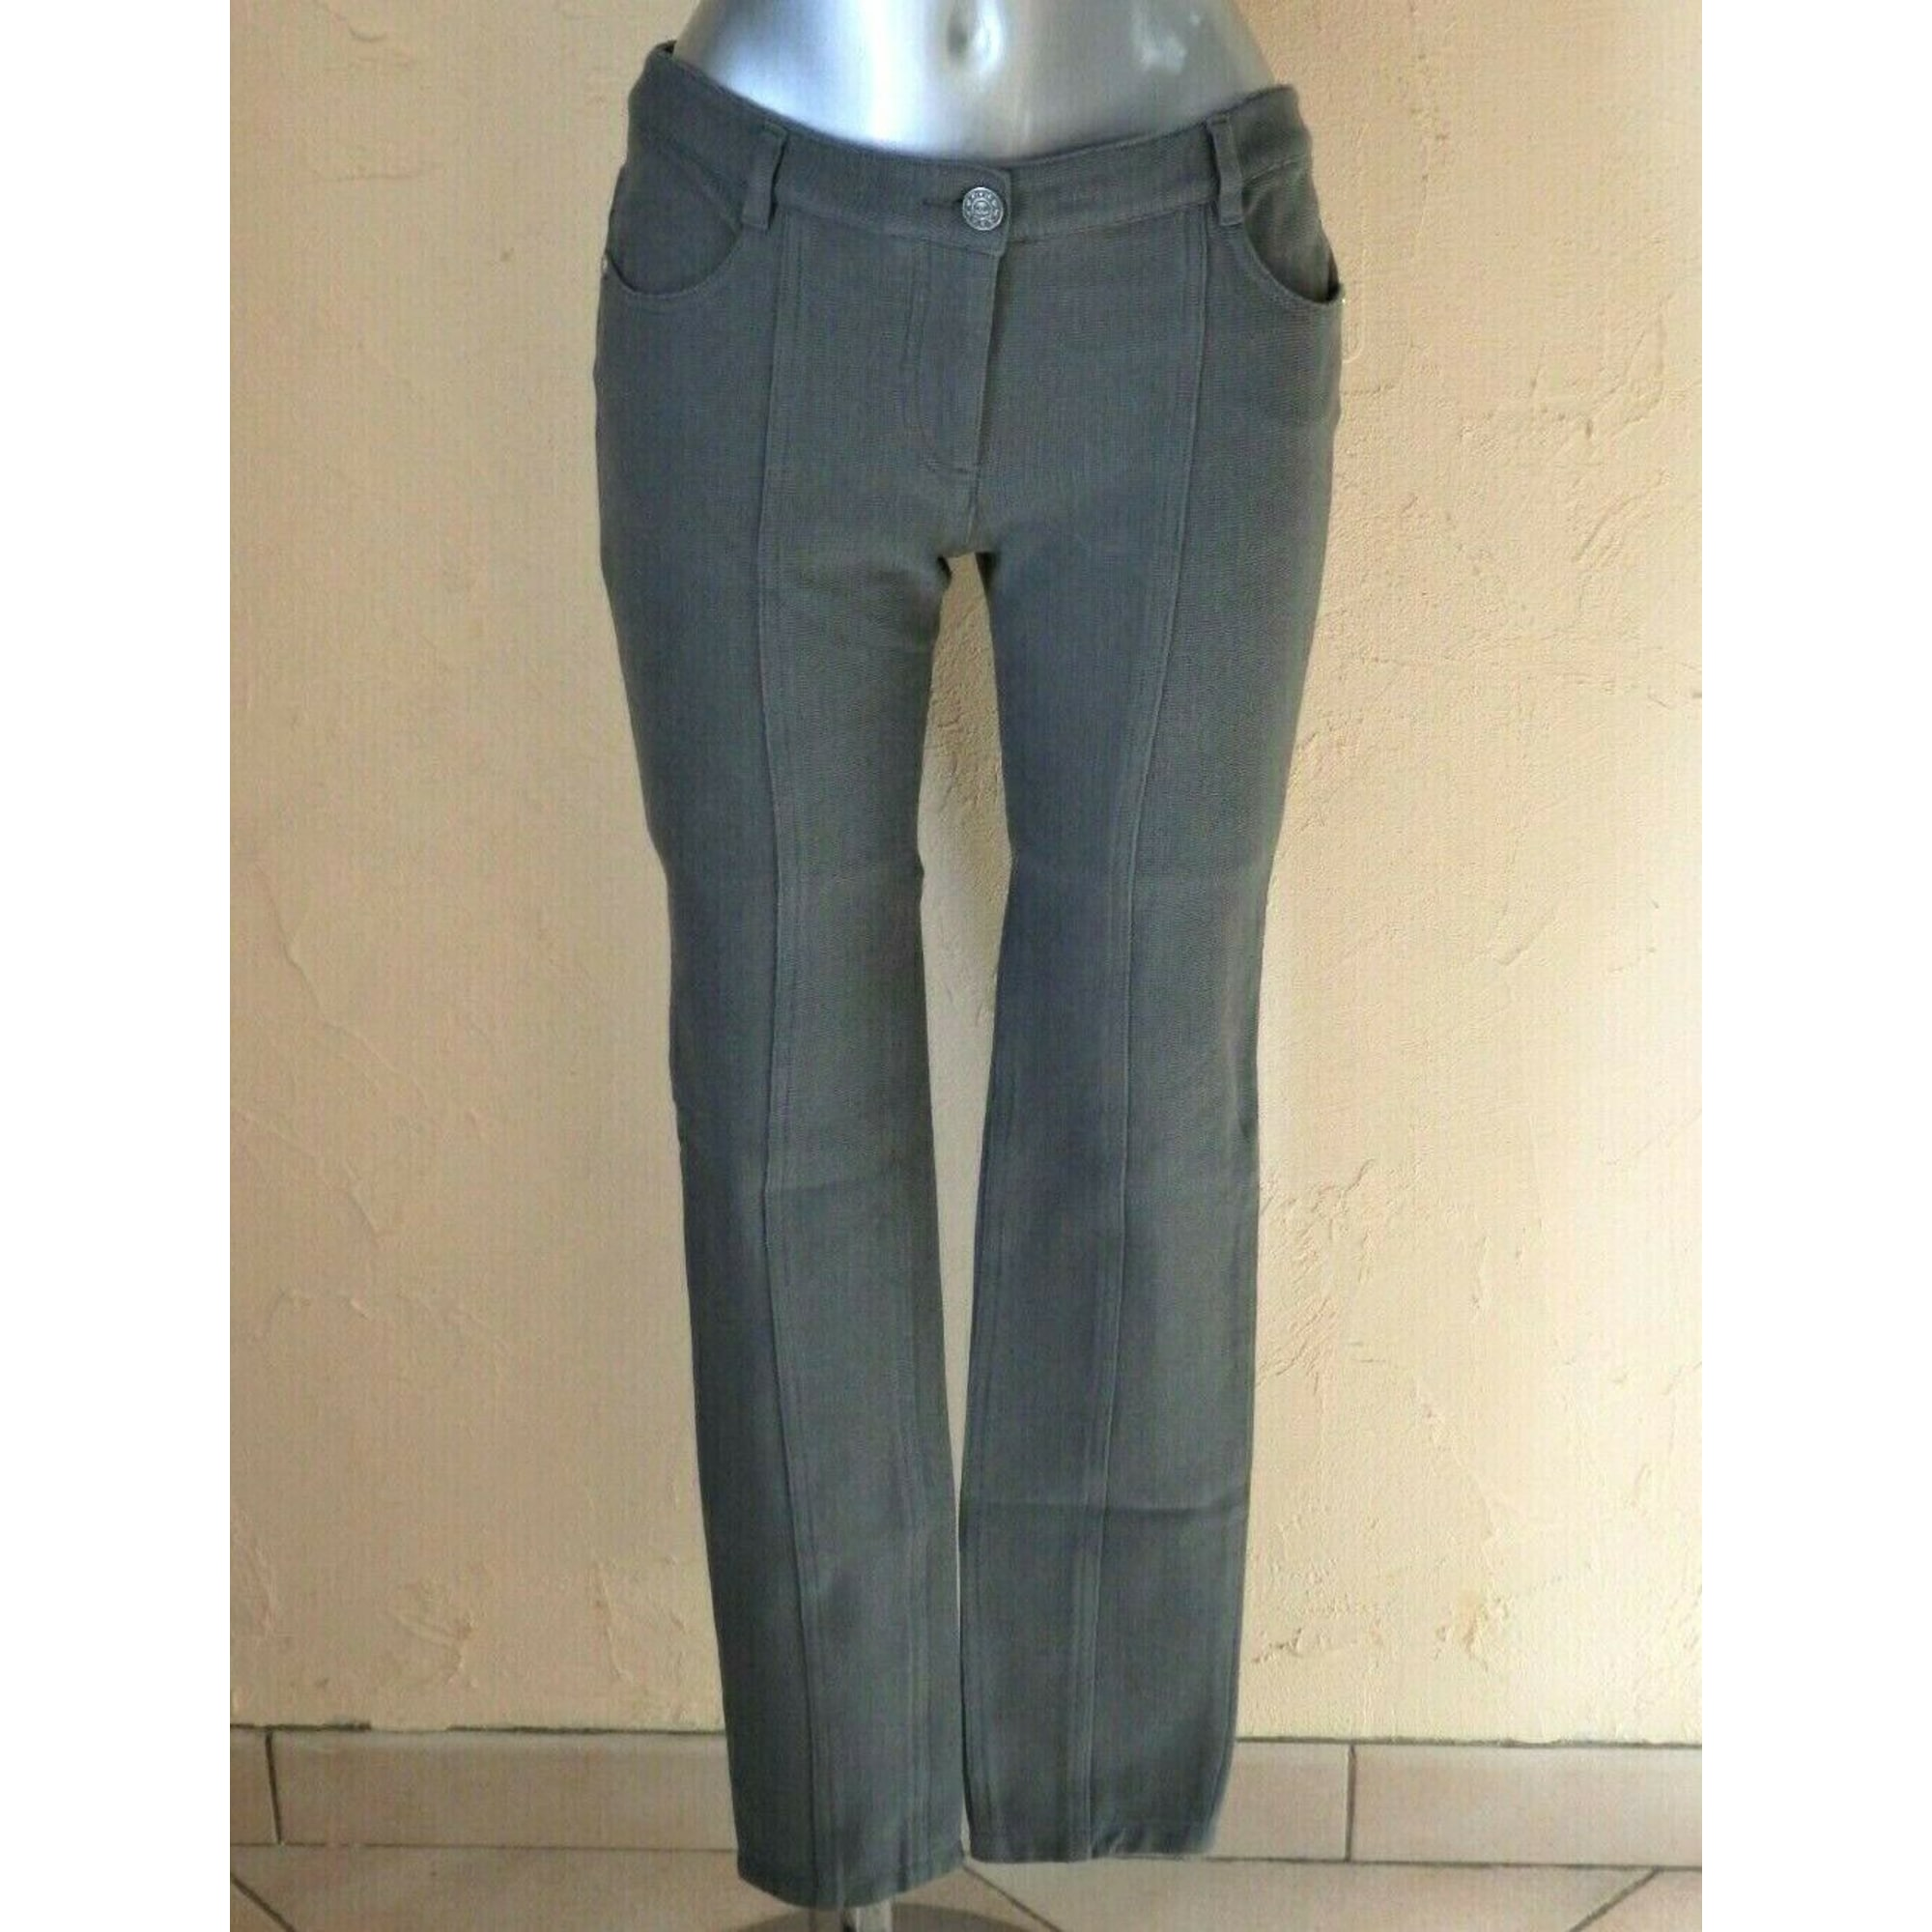 Pantalon slim, cigarette CHANEL Gris, anthracite